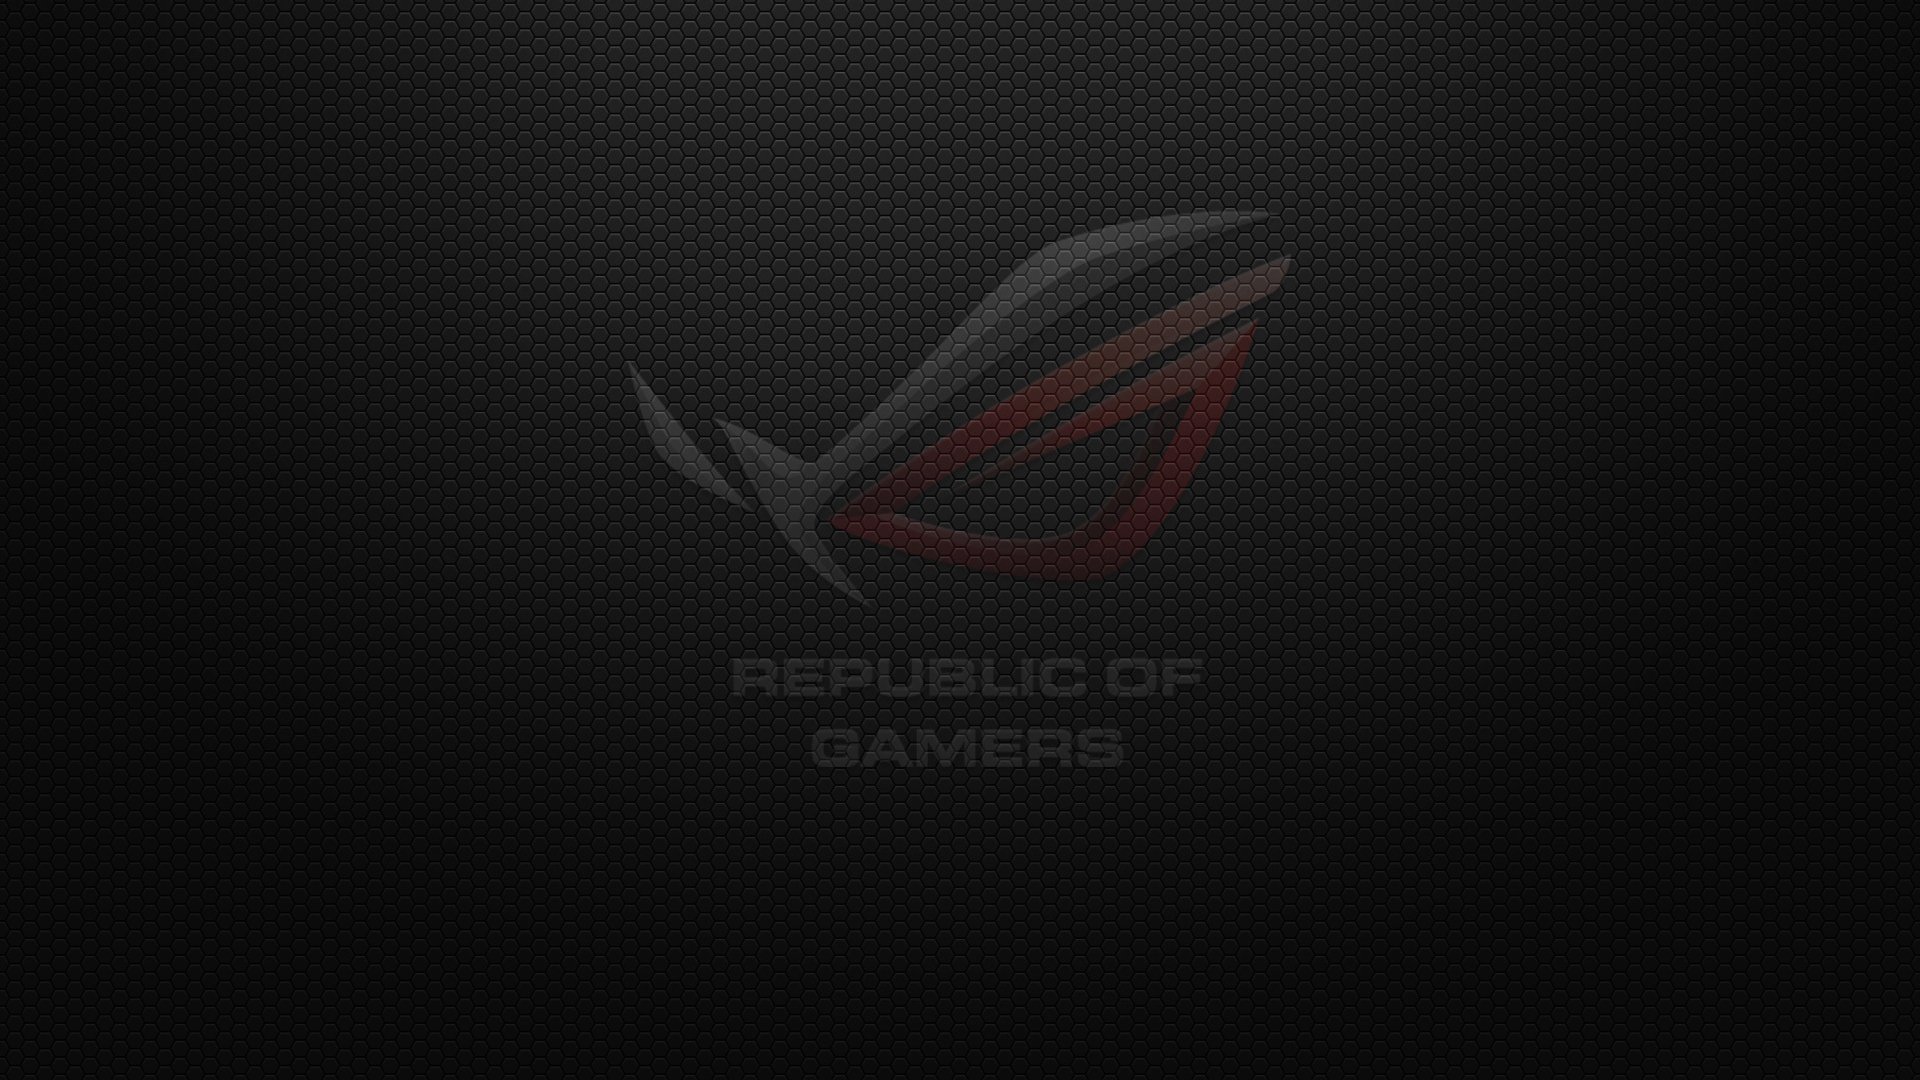 Free Download Asus Rog Republic Of Gamers Logo Hd 1920x1080 1080p Wallpaper And 1920x1080 For Your Desktop Mobile Tablet Explore 75 Rog Wallpapers Asus Rog Wallpaper Asus Wallpaper Hd